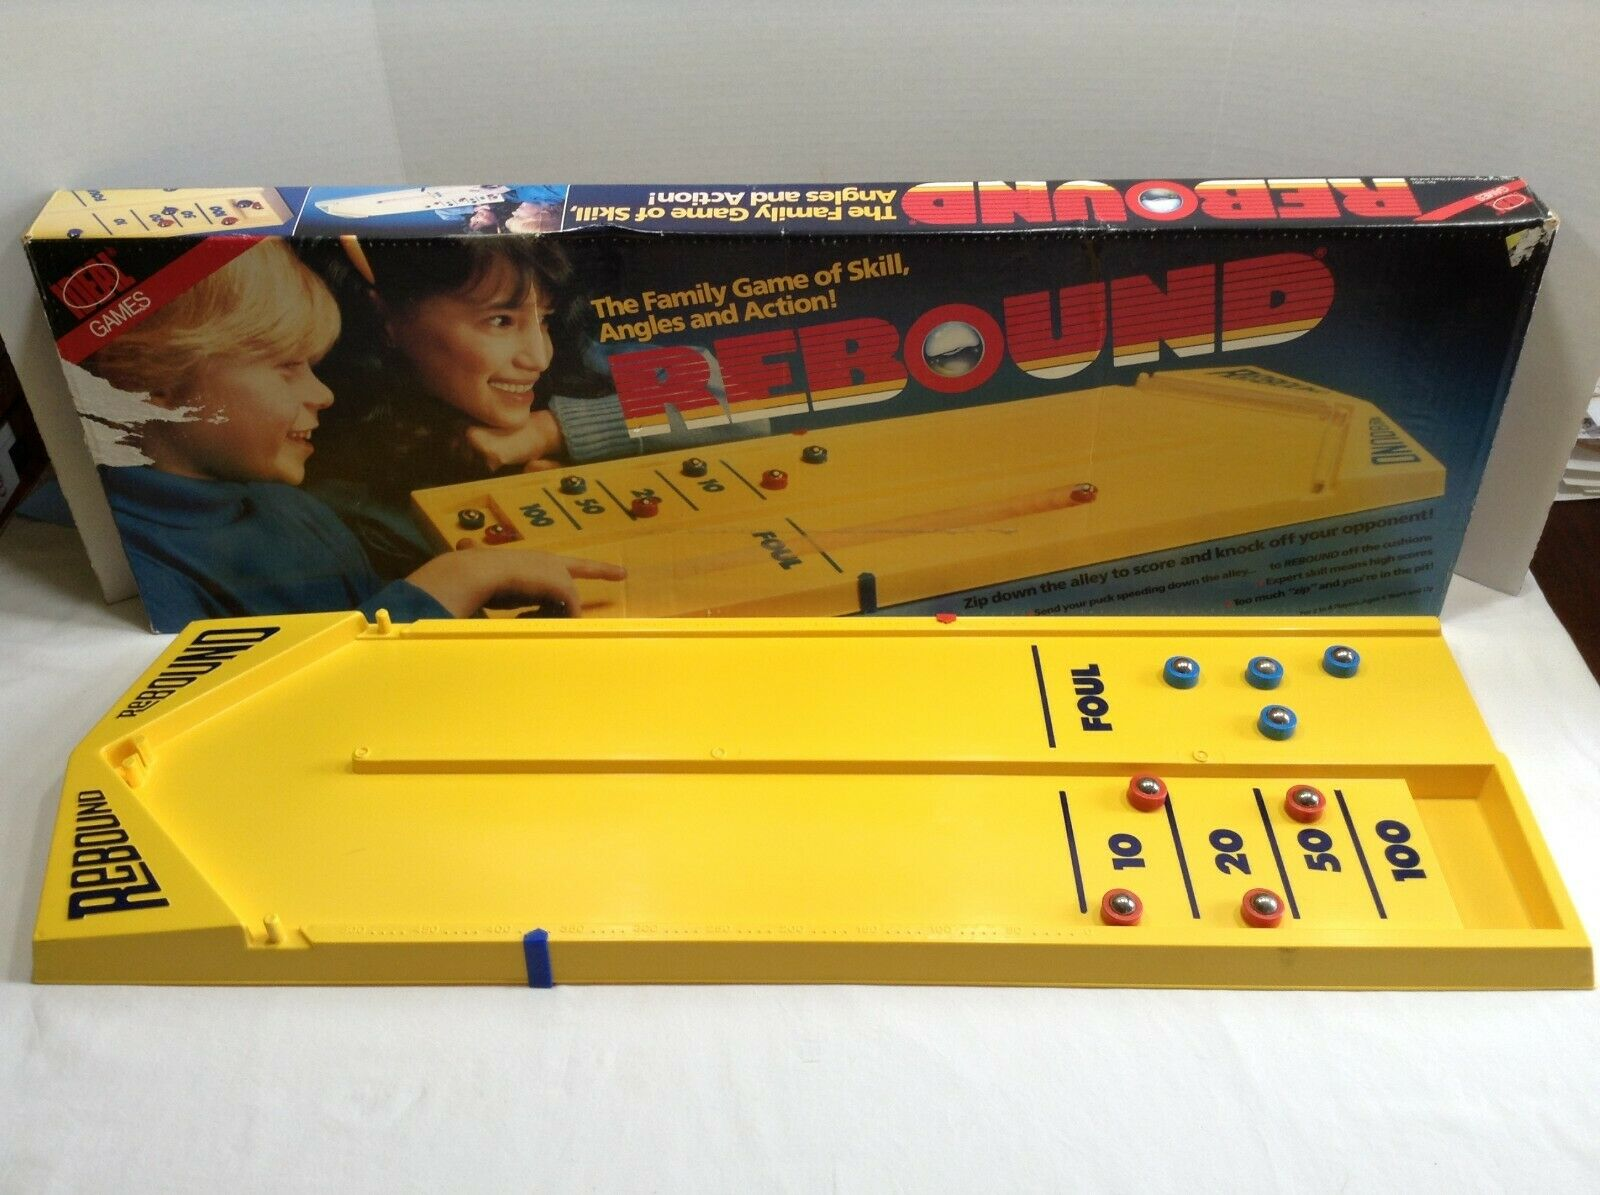 Rebound Vintage 1986 Edition By Ideal-Missing Marbles-Skill-Angles-Action